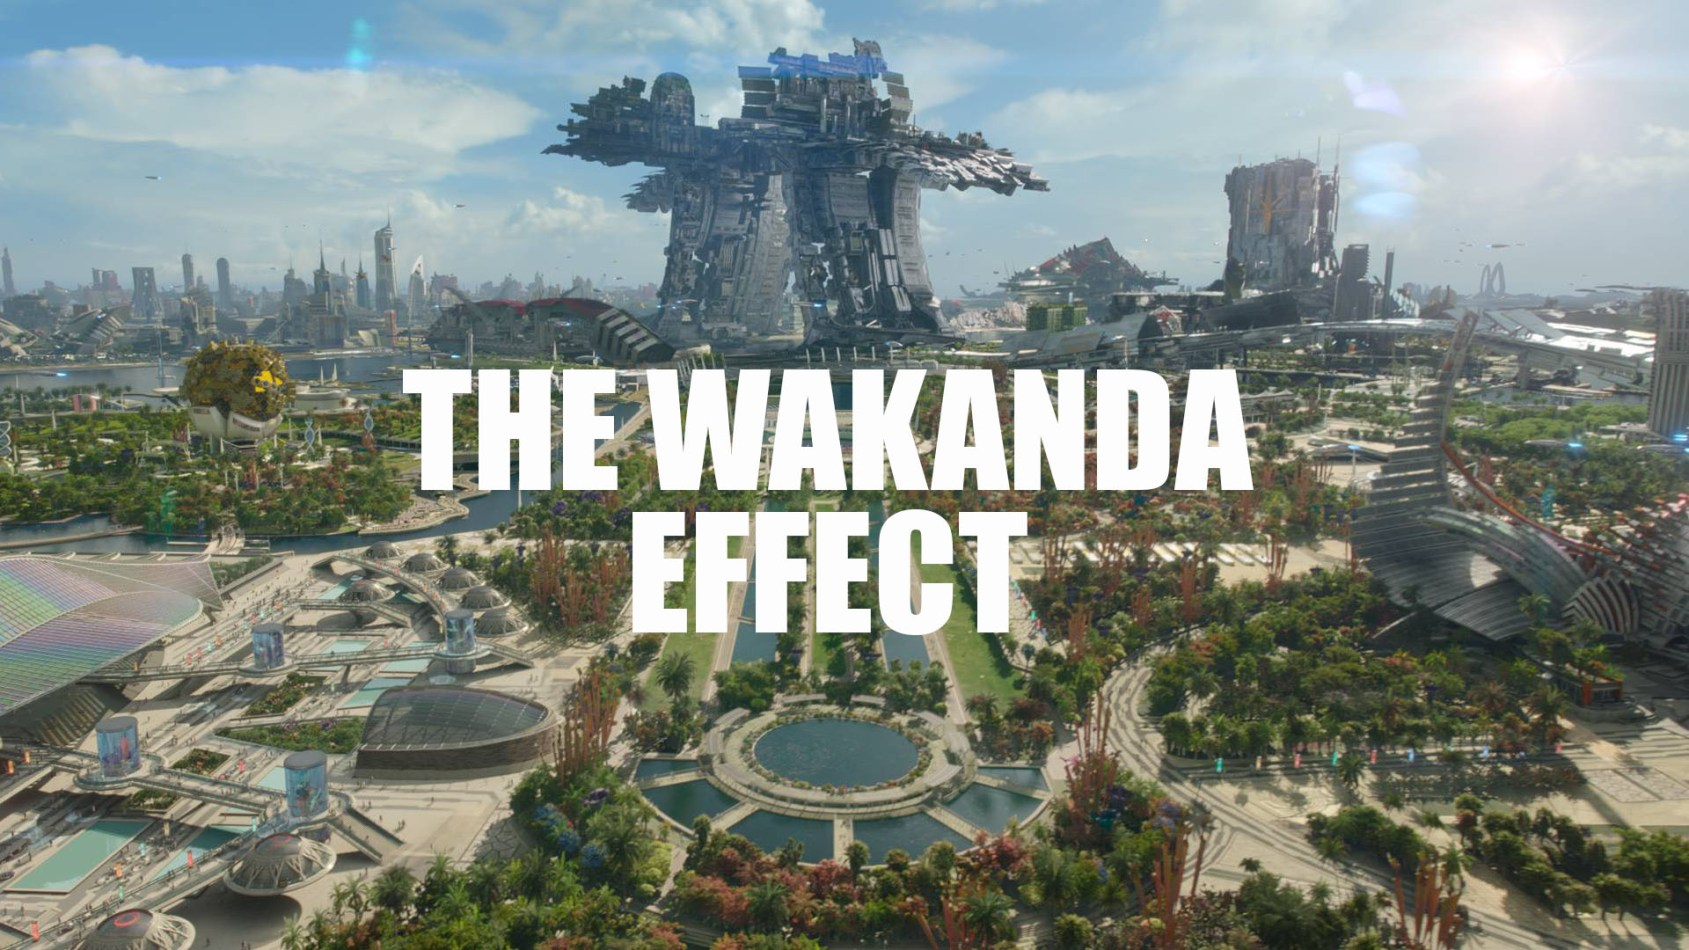 The Wakanda Effect Show Special